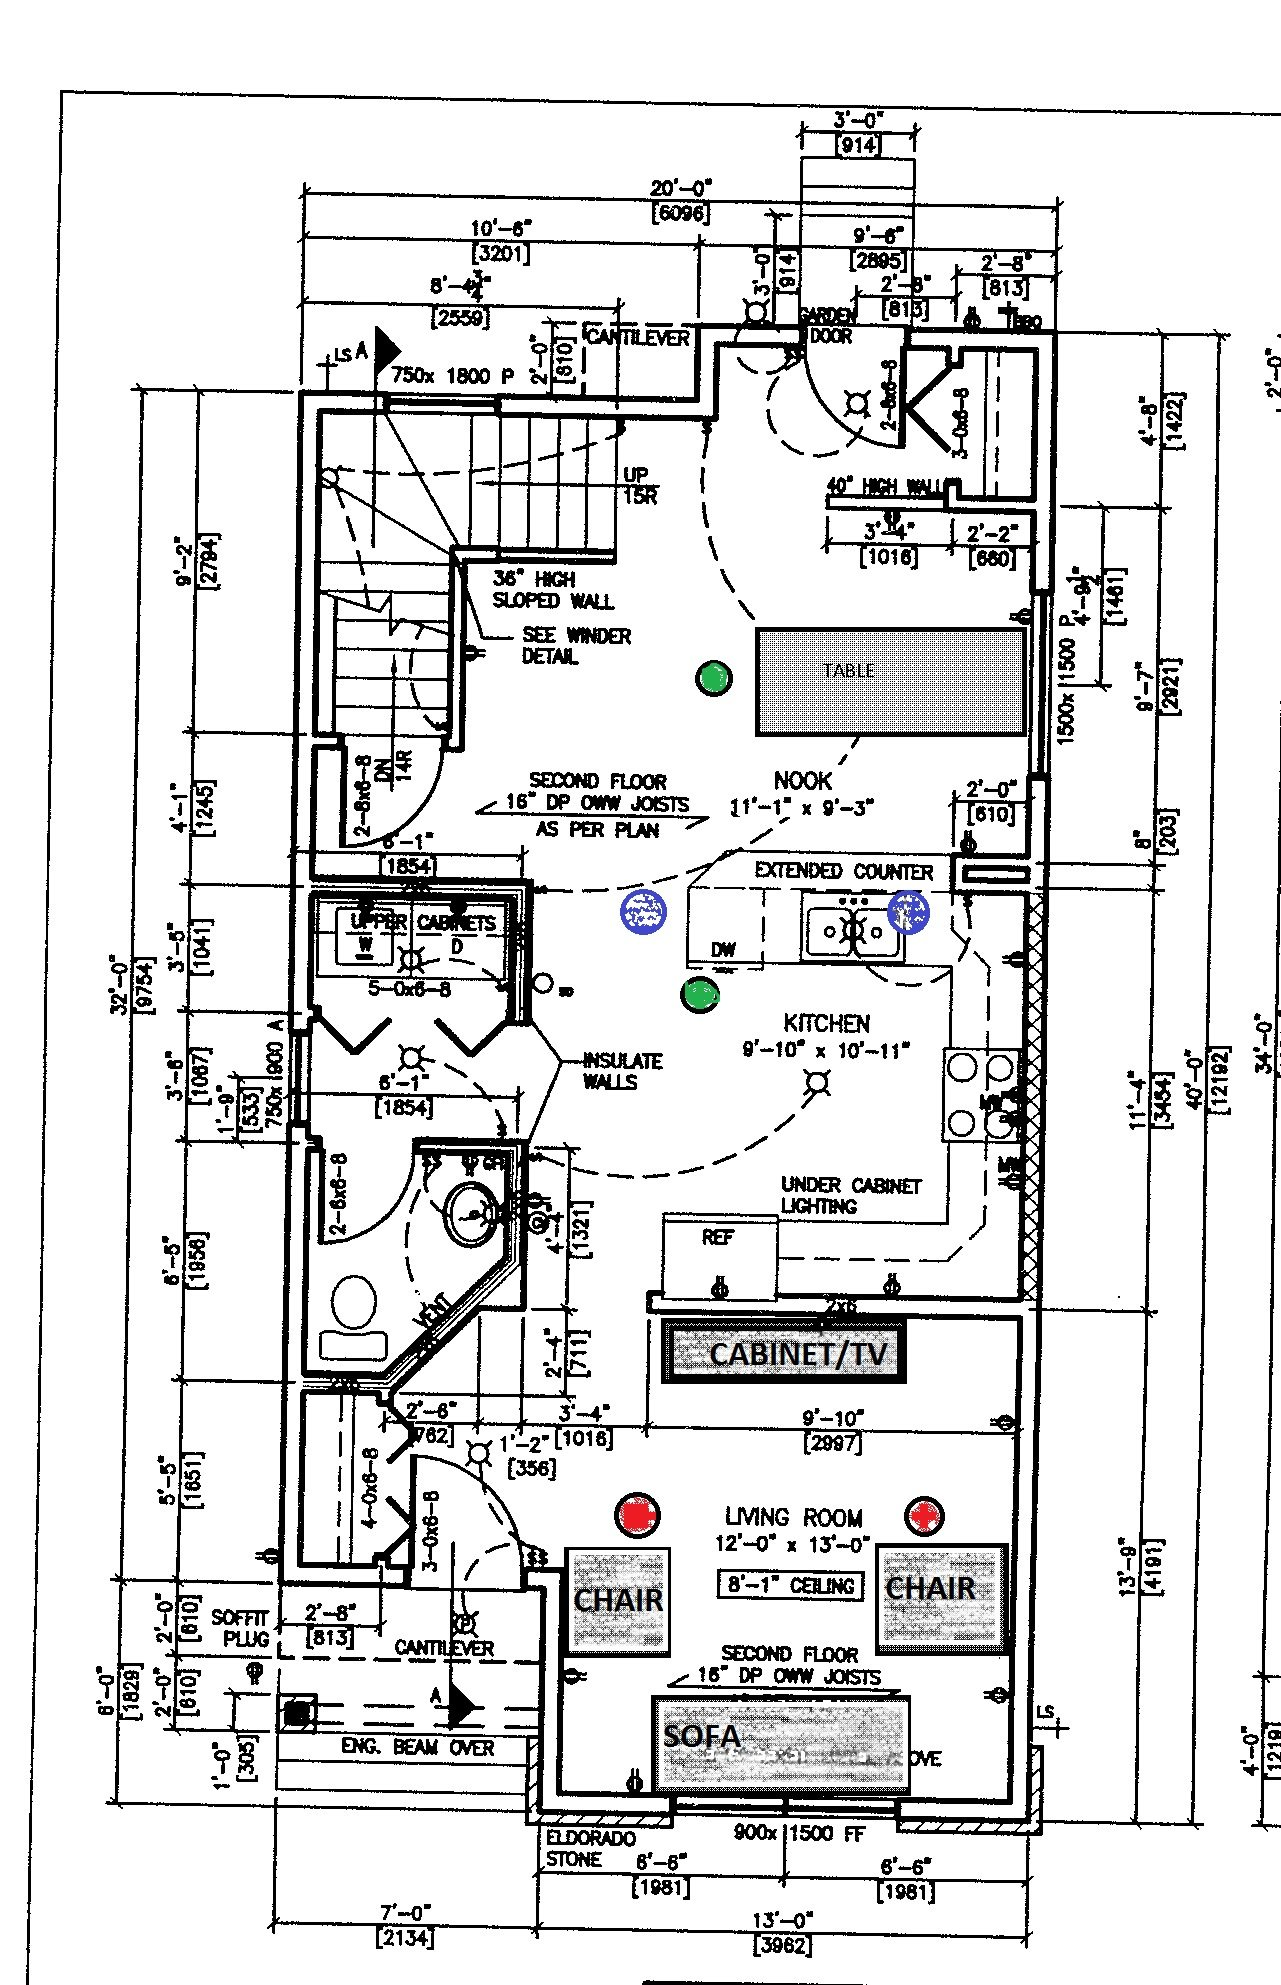 In Ceiling Speaker Placement For Open Kitchen Dining Room Avs Surround Sound On 5 1 Setup Diagram Any And All Input Is Welcomed